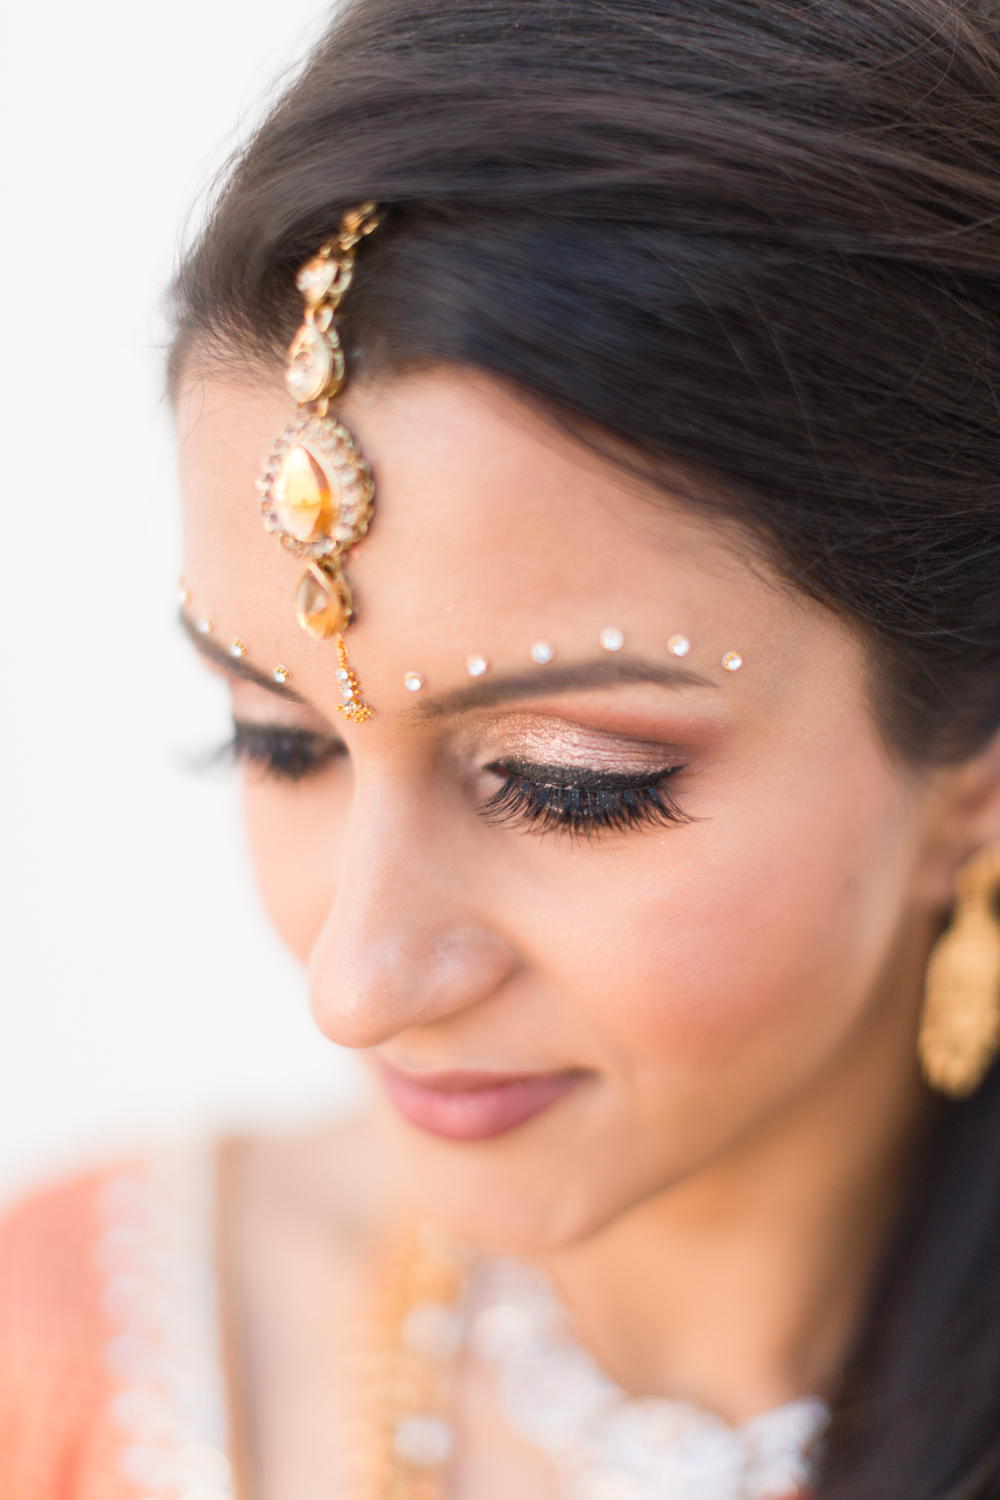 CourtneyPaige_WeddingPhotography_Nagjee-24.jpg